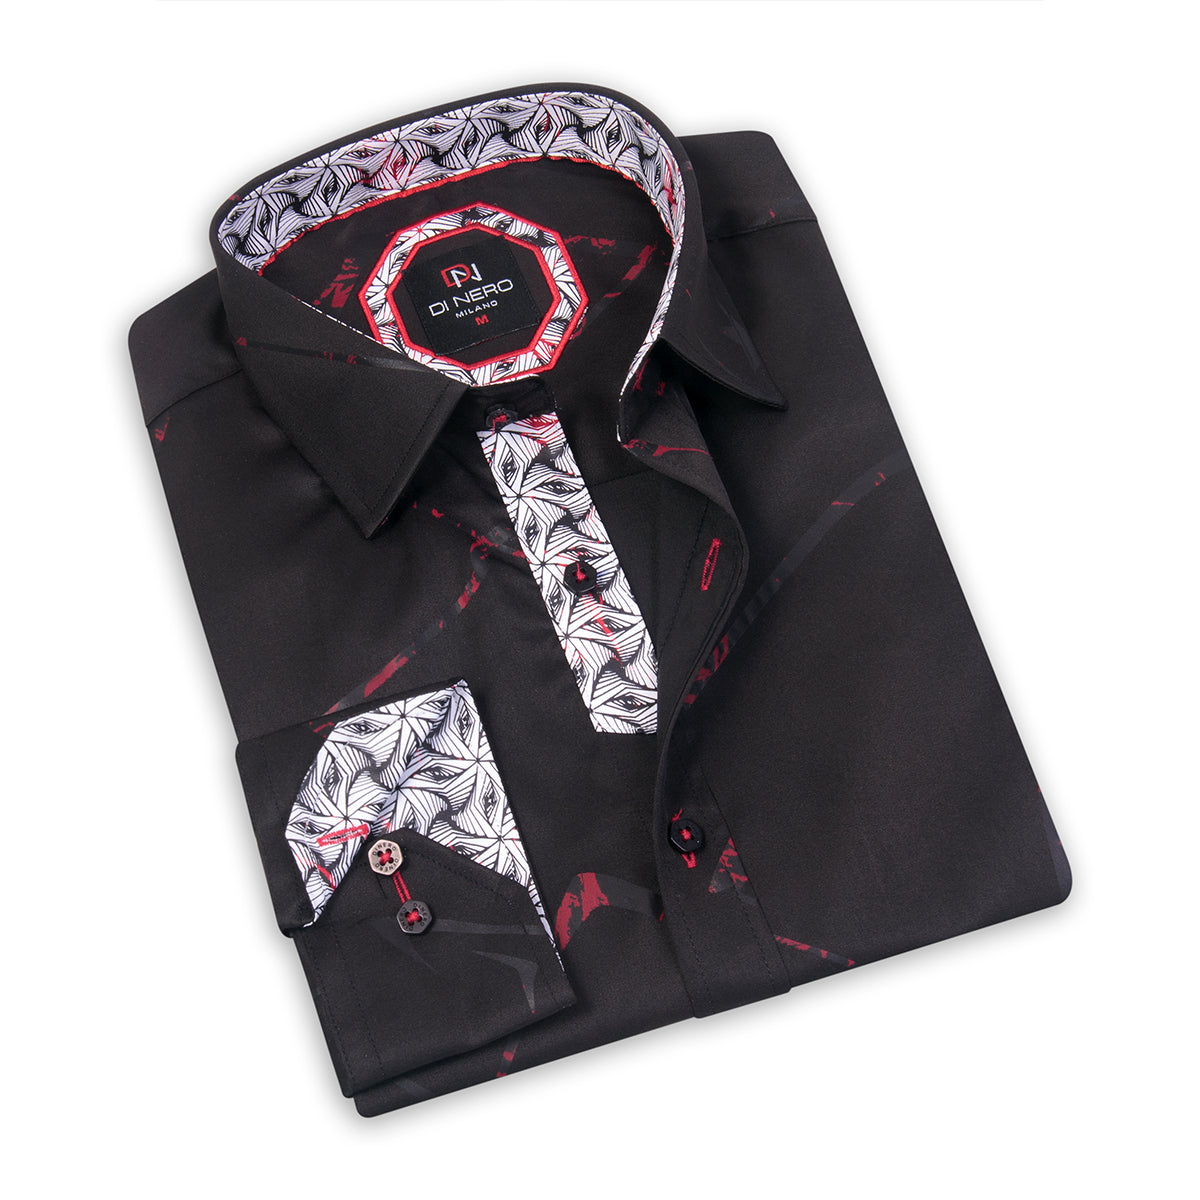 Cryptic Black DiNero Printed Shirt